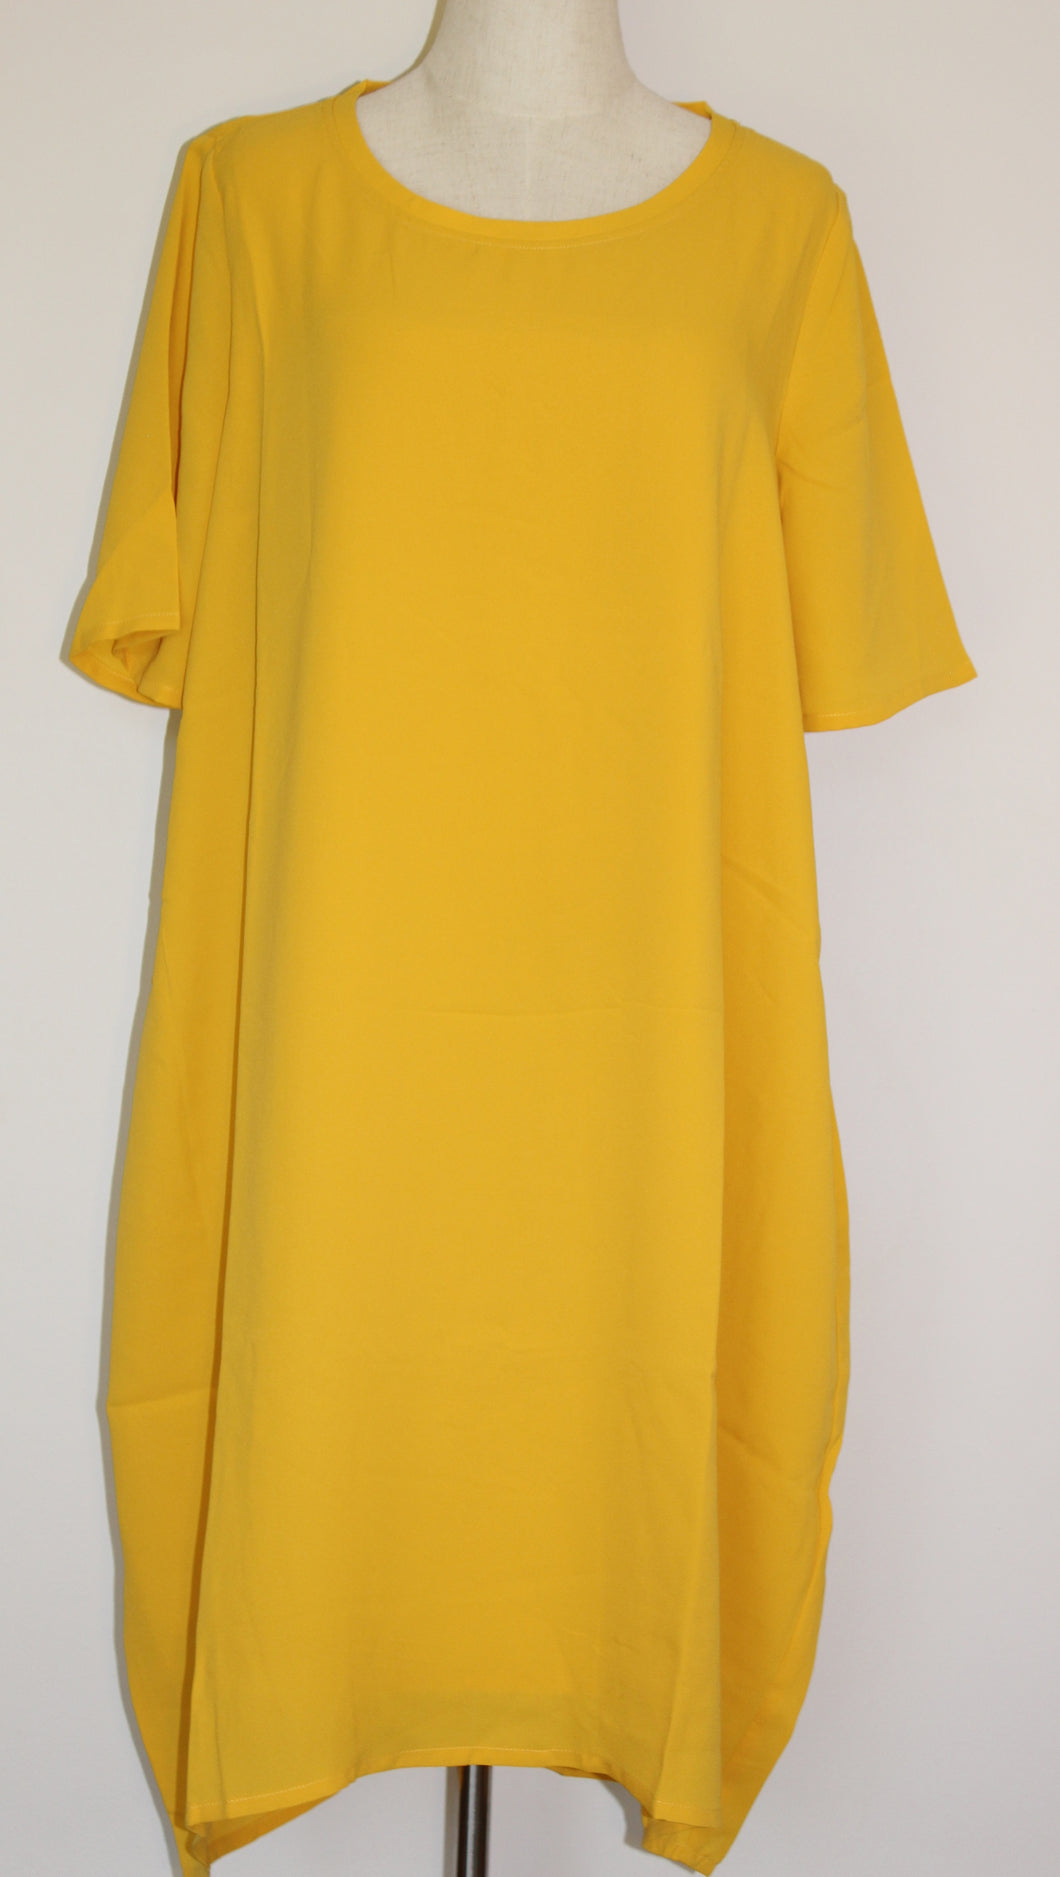 Privilege Isadora Drape Dress Size 12